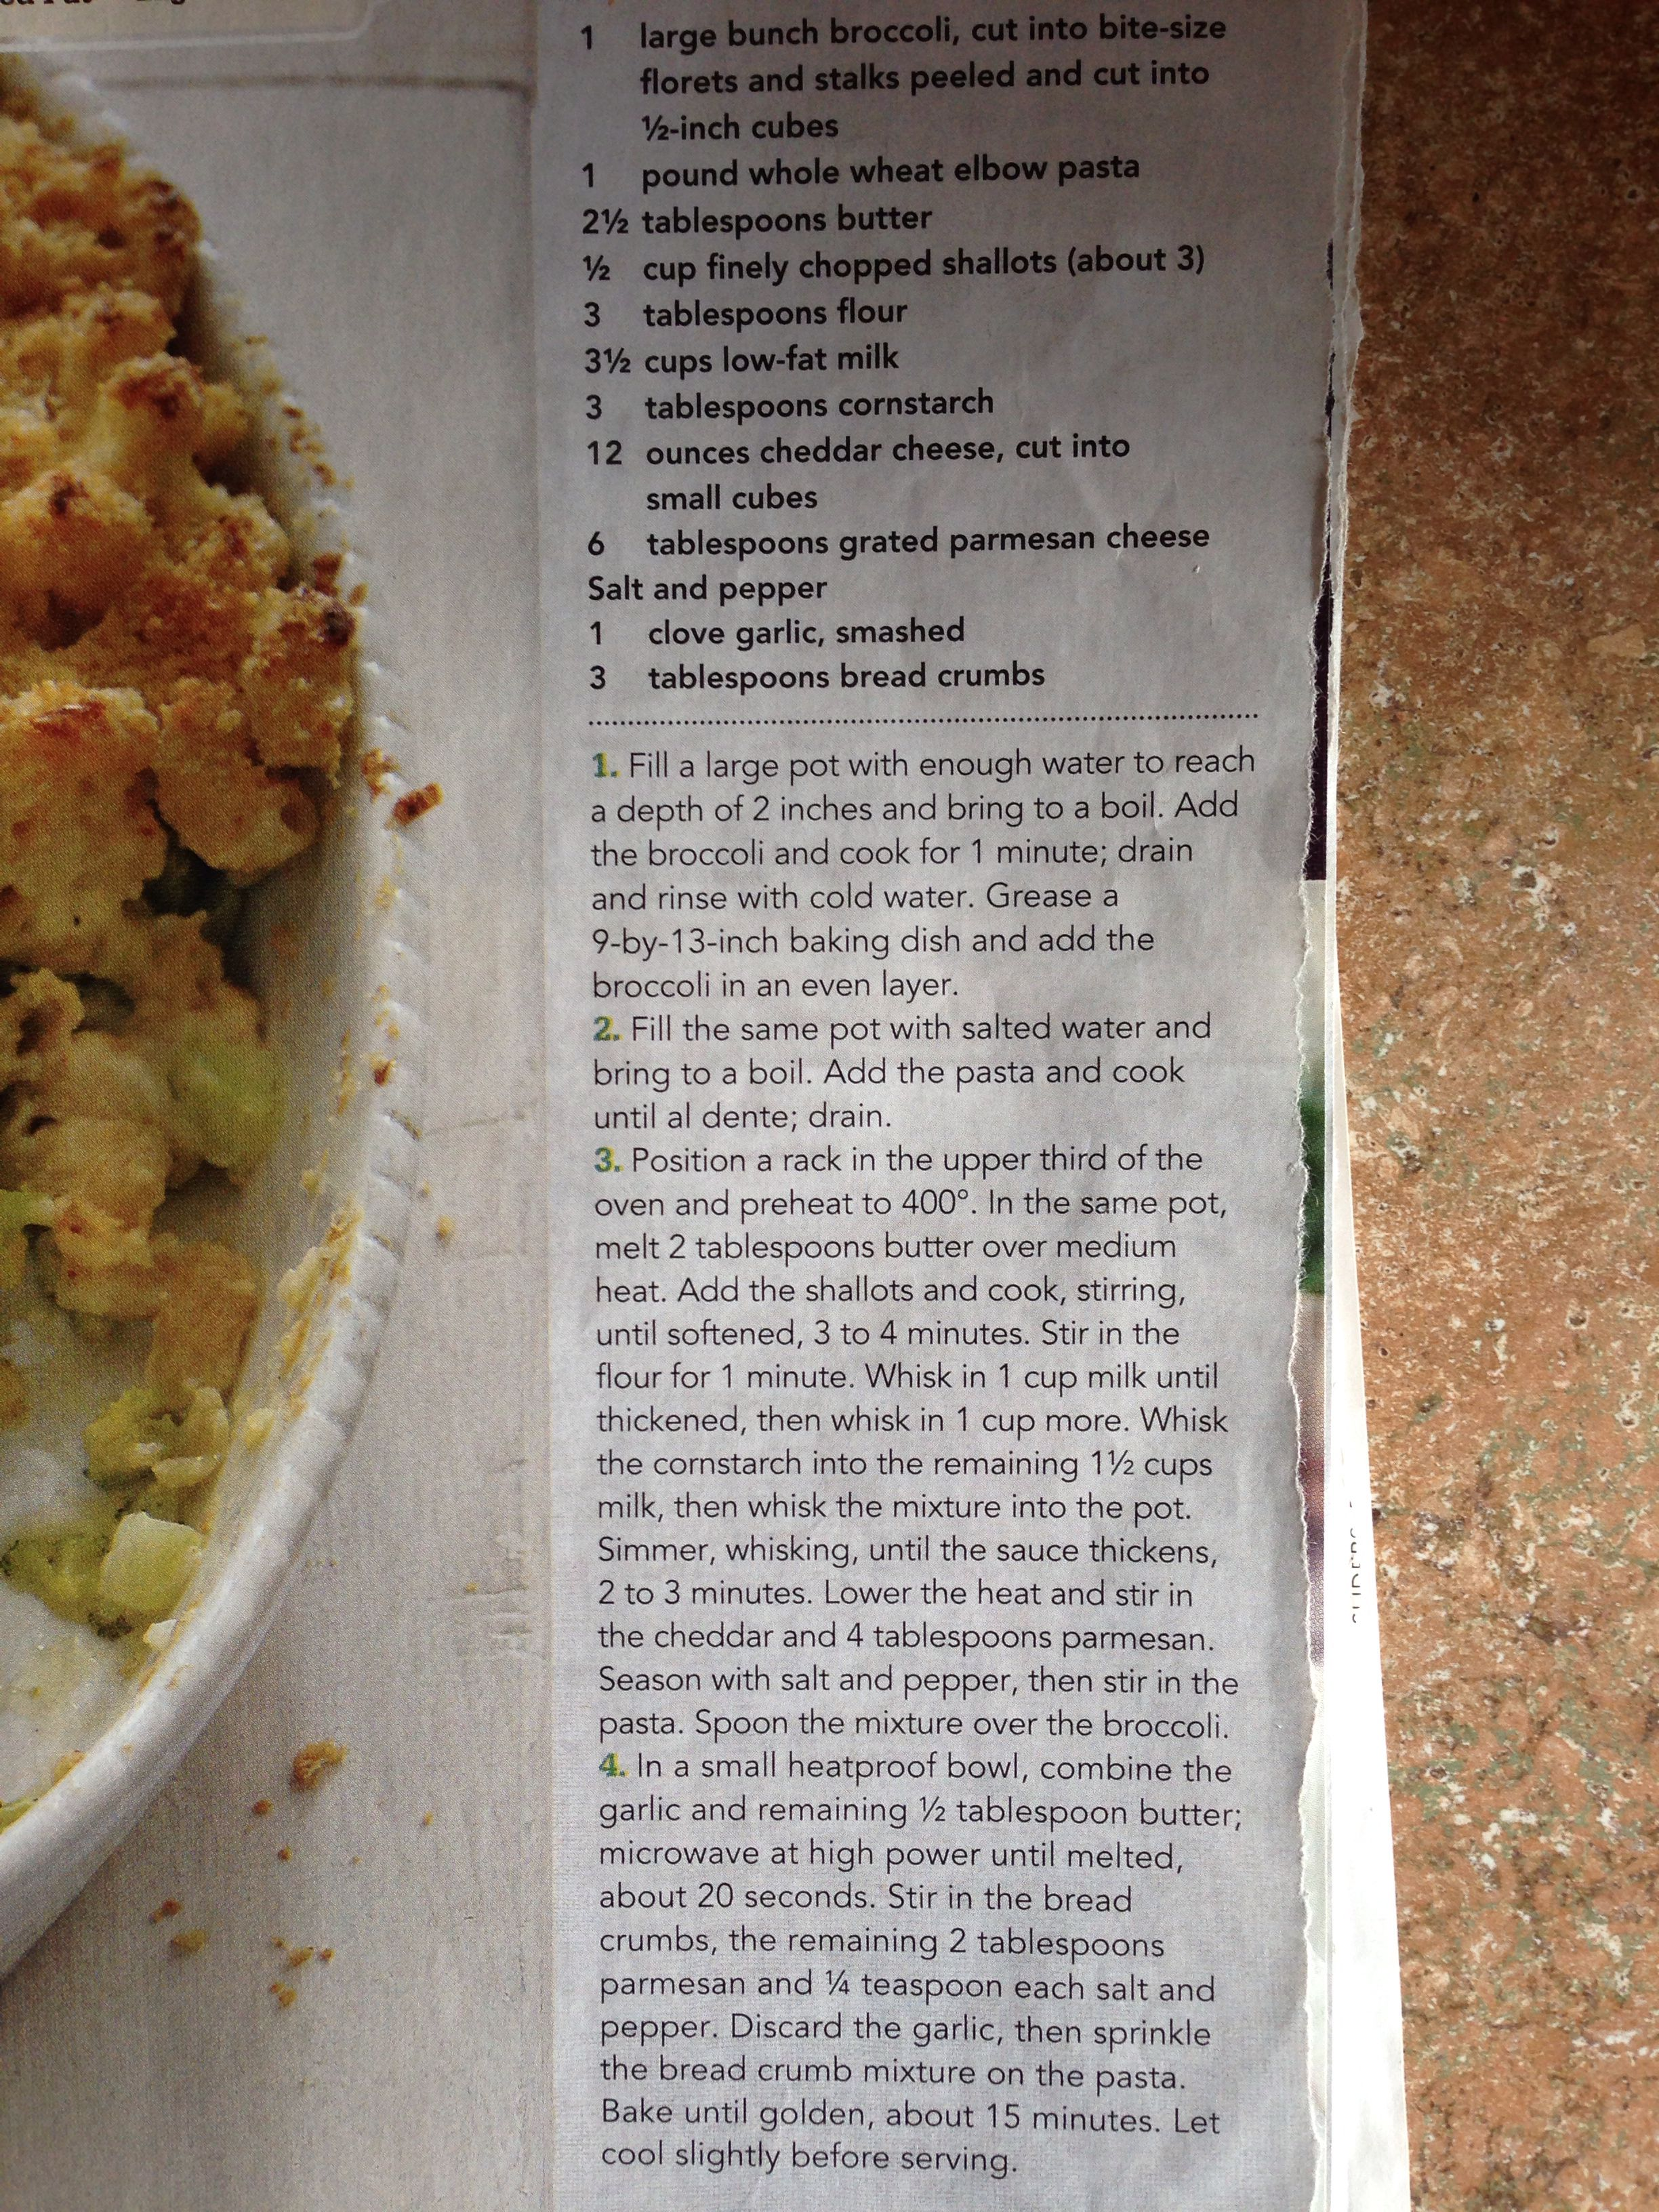 Baked macaroni and broccoli from Rachael Ray Mag